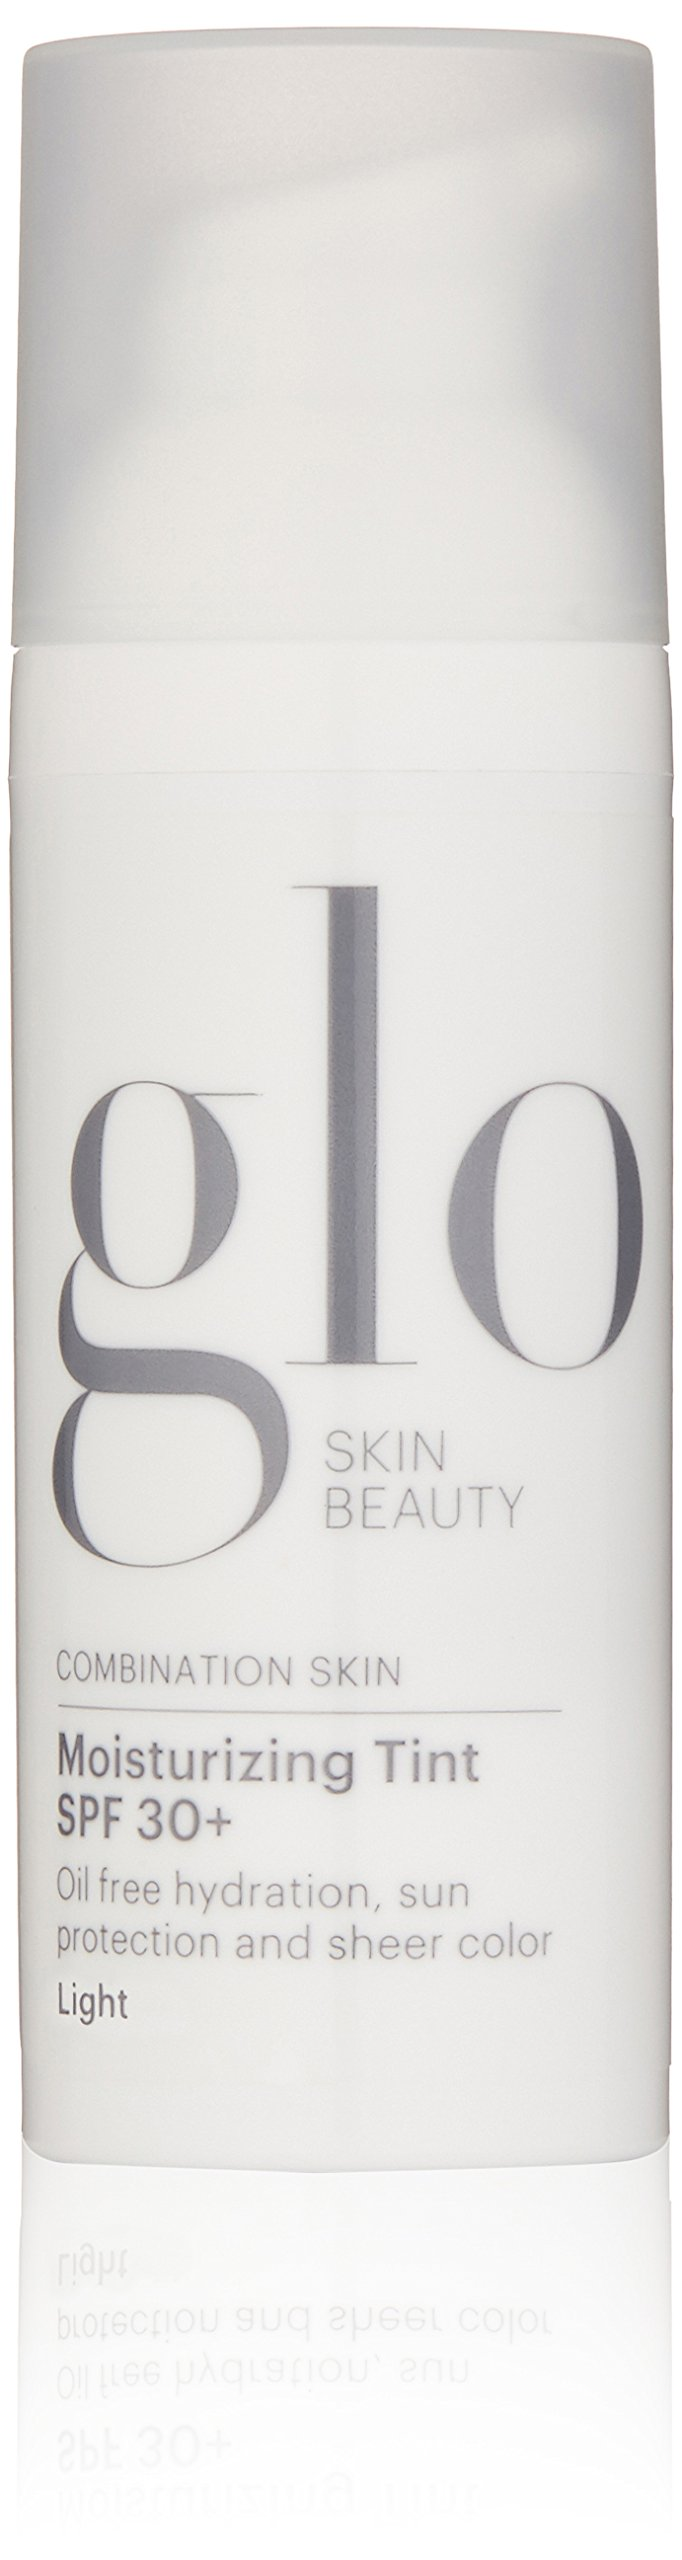 Glo Skin Beauty Moisturizing Tint SPF 30+ in Light   Tinted Face Moisturizer with Sunscreen   4 Shades, Dewy Finish